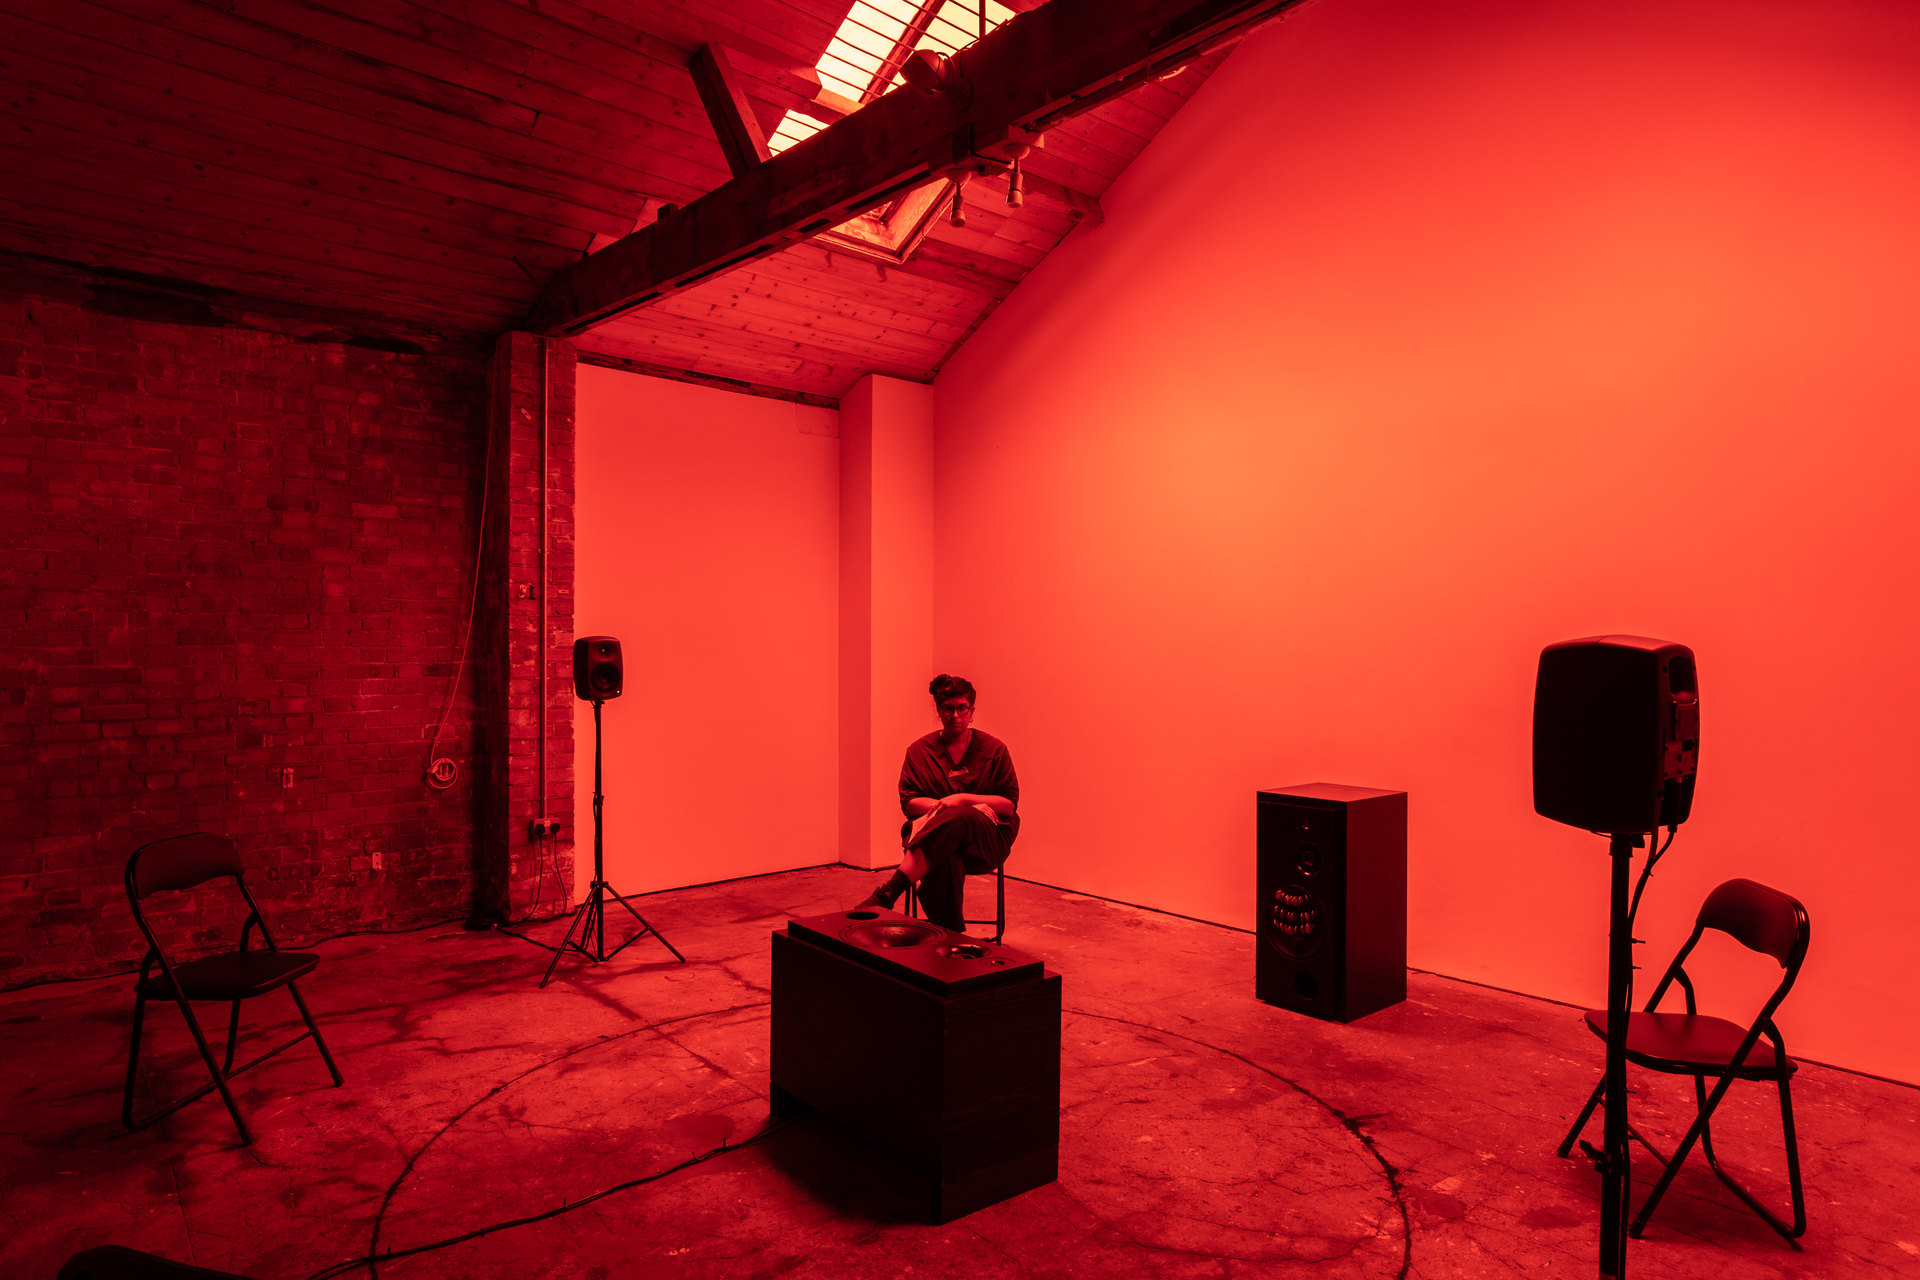 Shenece Oretha, Called To Respond, 2020 Installation View active speakers, chicken bones, cymbals, rehearsal chairs, lighting gel